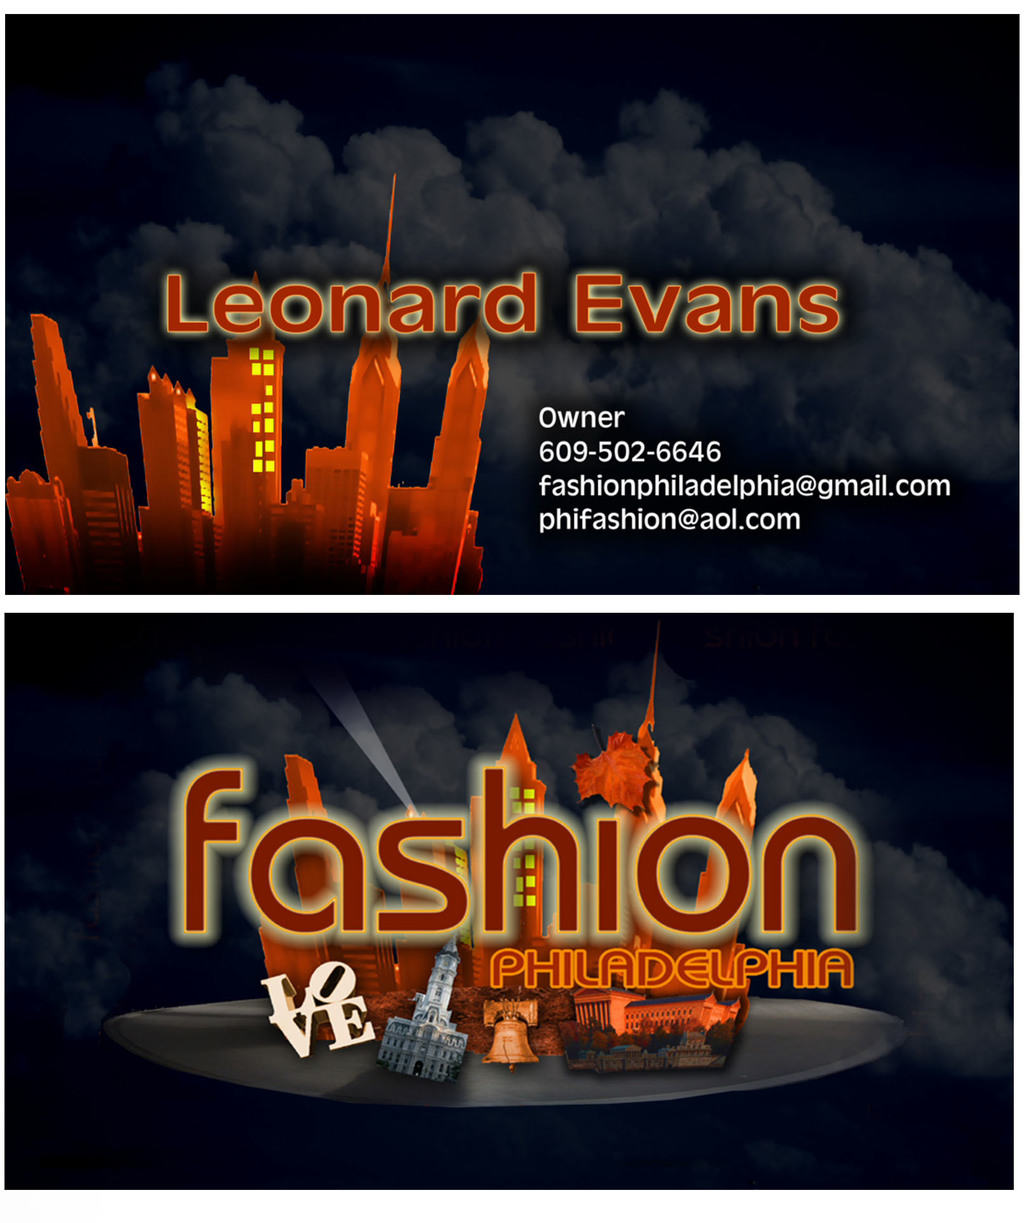 graphic_design_business_cards_photography_services_canon_nikon_embodied_professional_discount_coupon_code